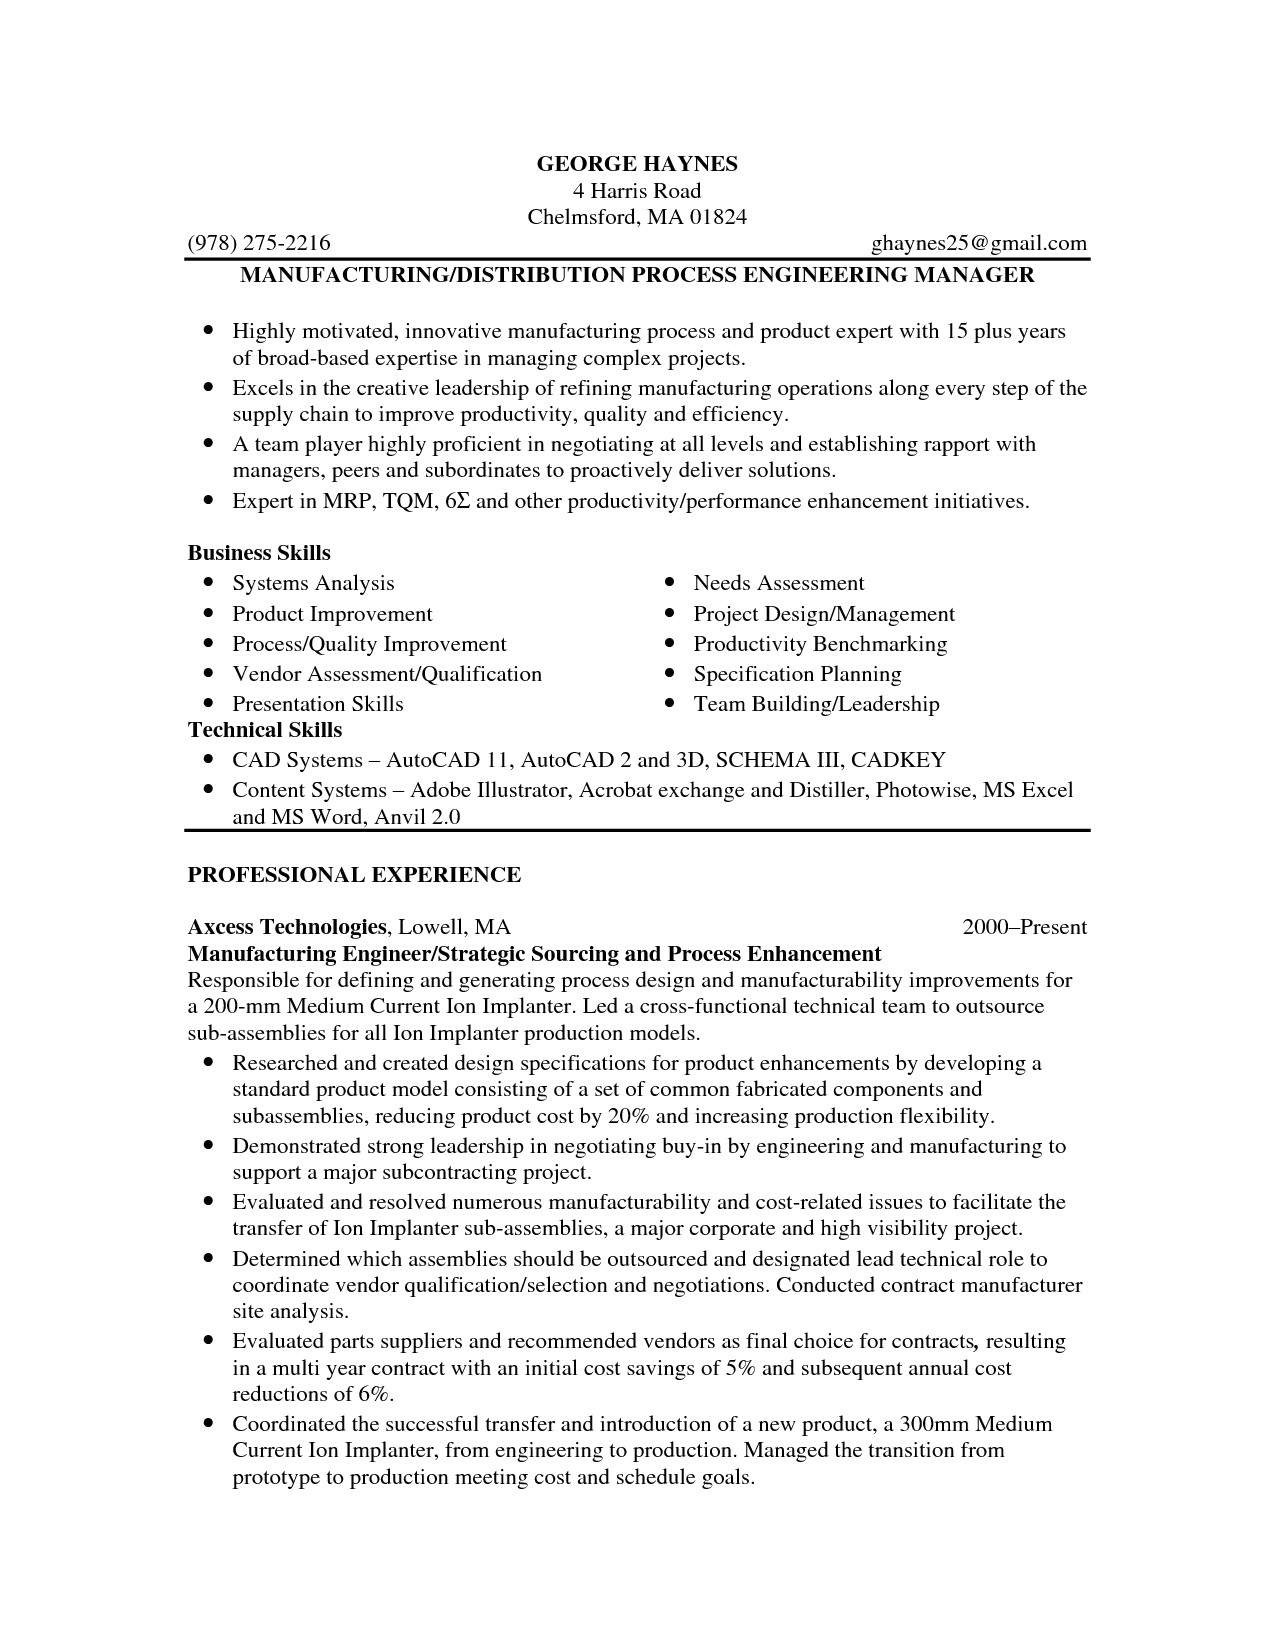 competency based resumes pdf unique functional resume template pdf